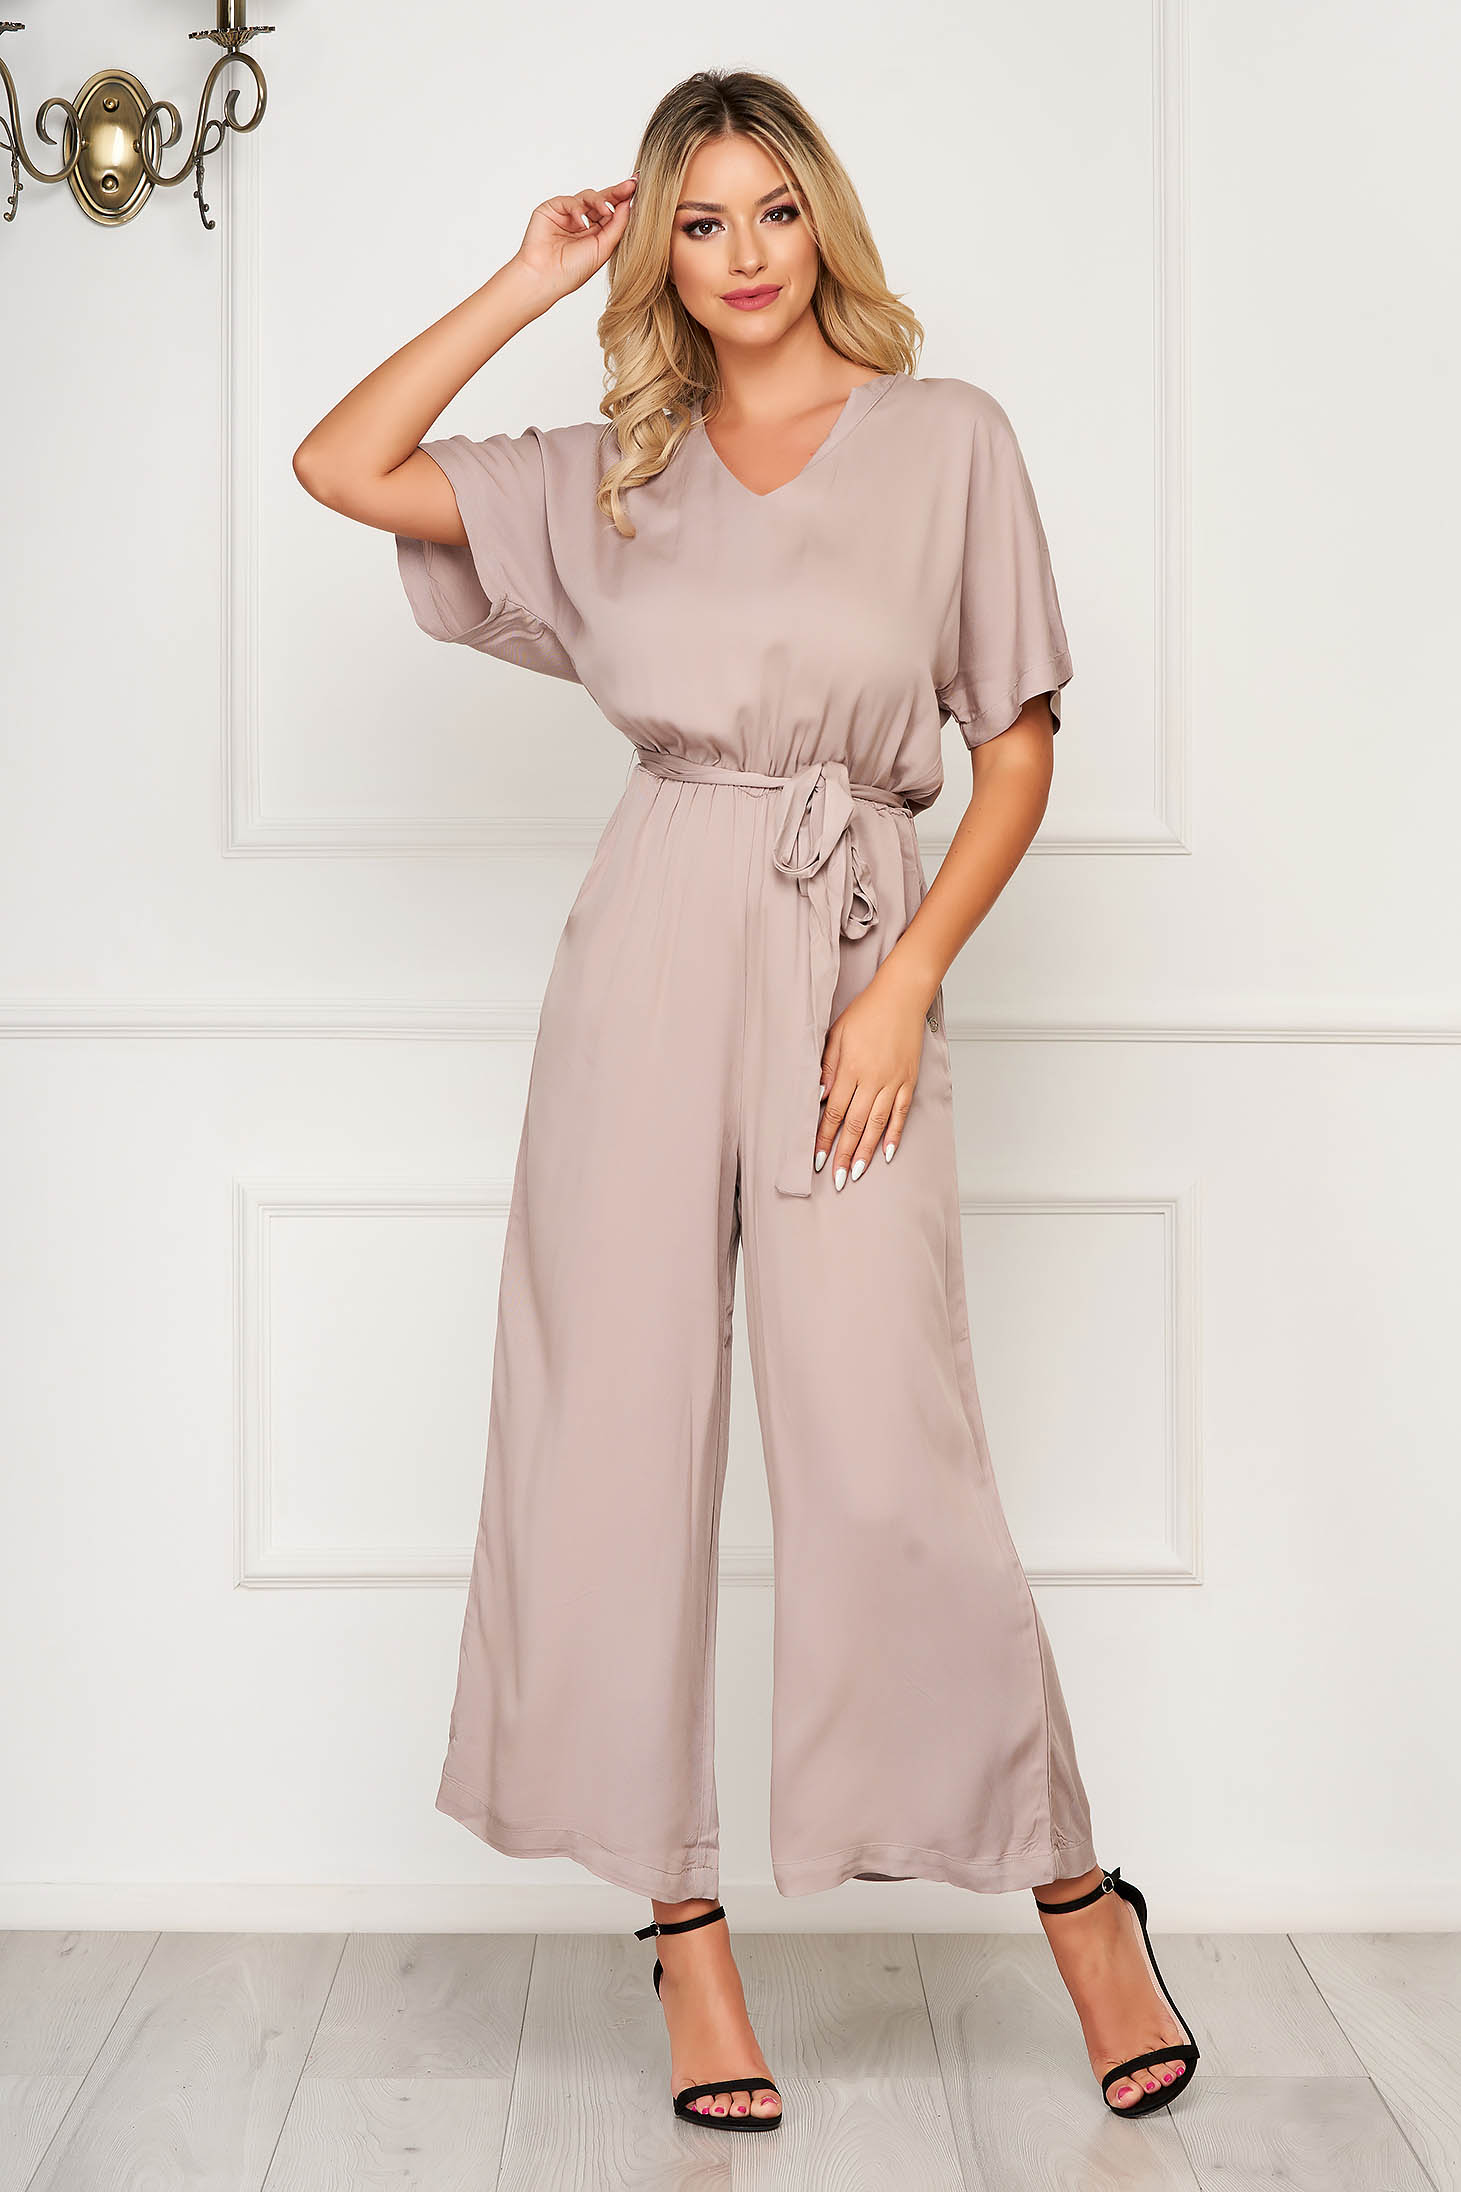 Lightgrey jumpsuit casual flared accessorized with tied waistband